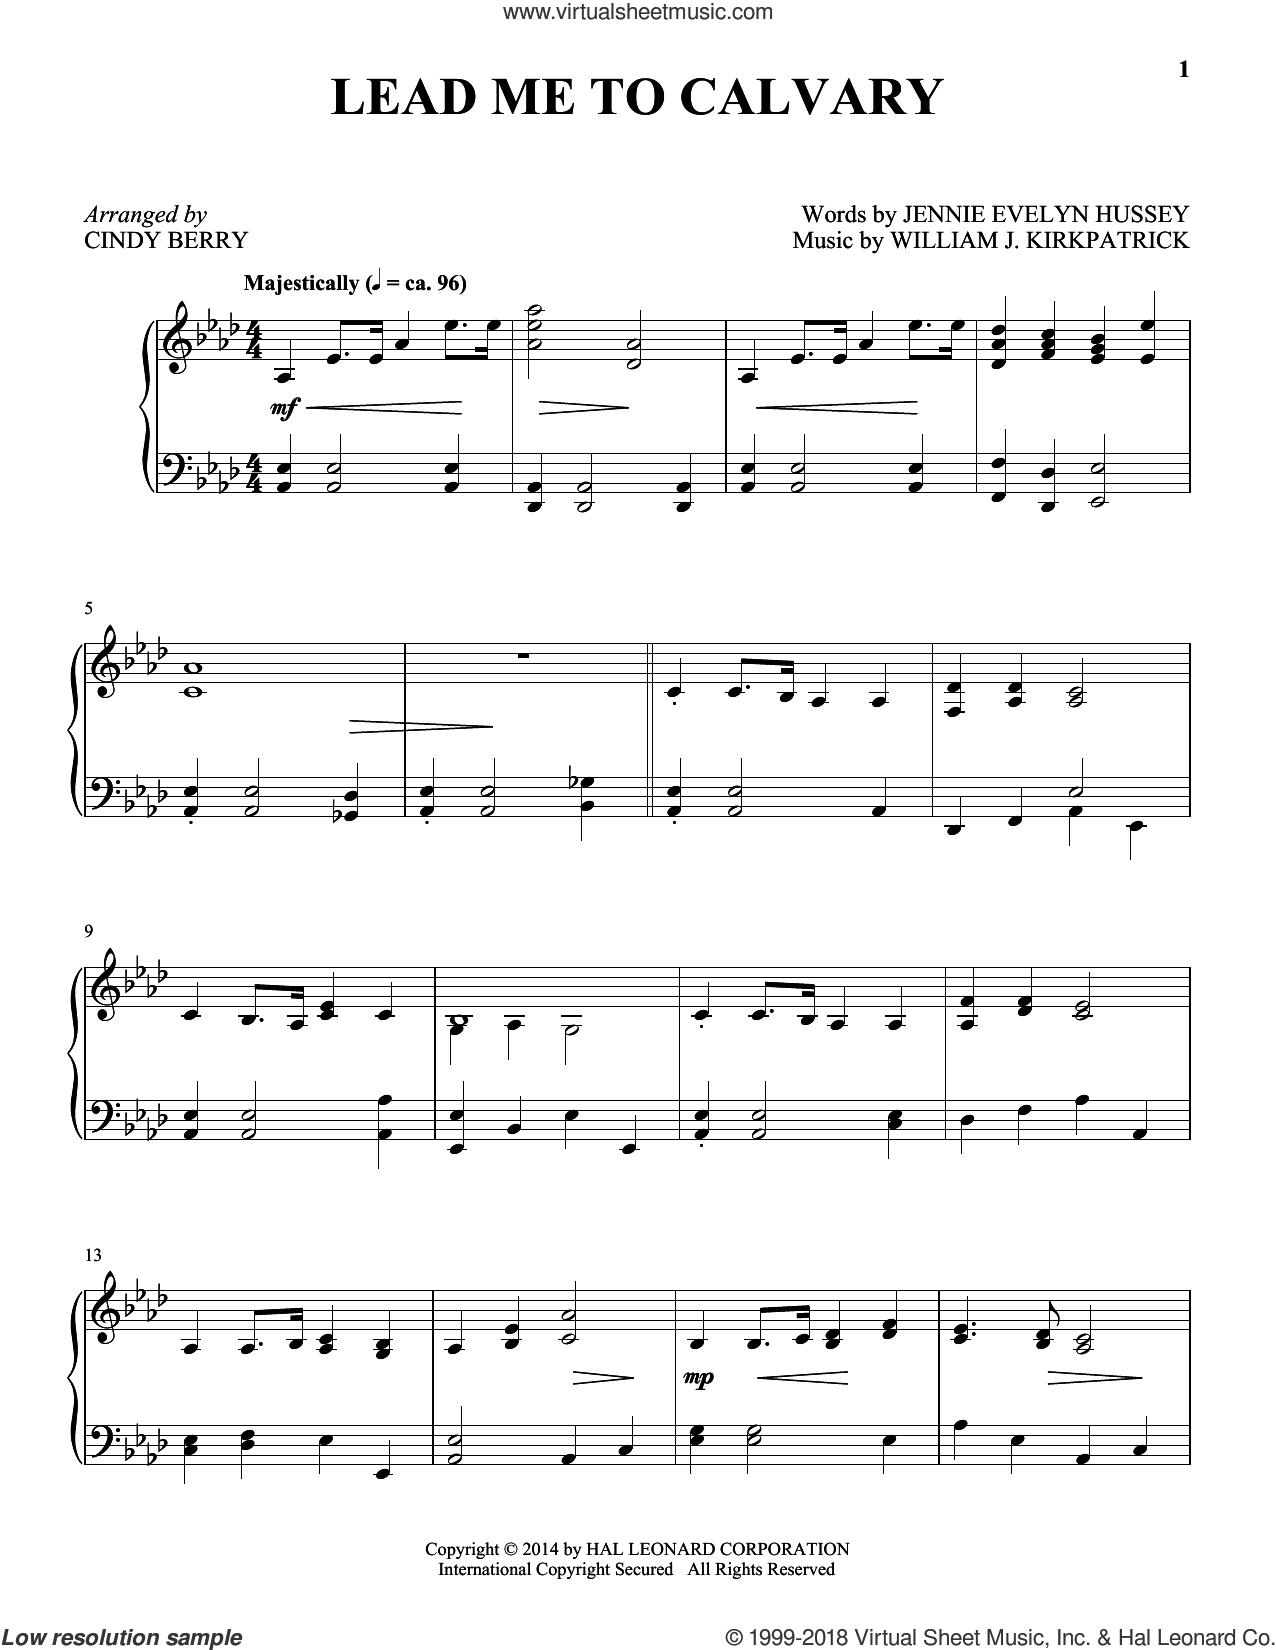 Lead Me To Calvary sheet music for piano solo by William J. Kirkpatrick, Cindy Berry and Jennie Evelyn Hussey, intermediate